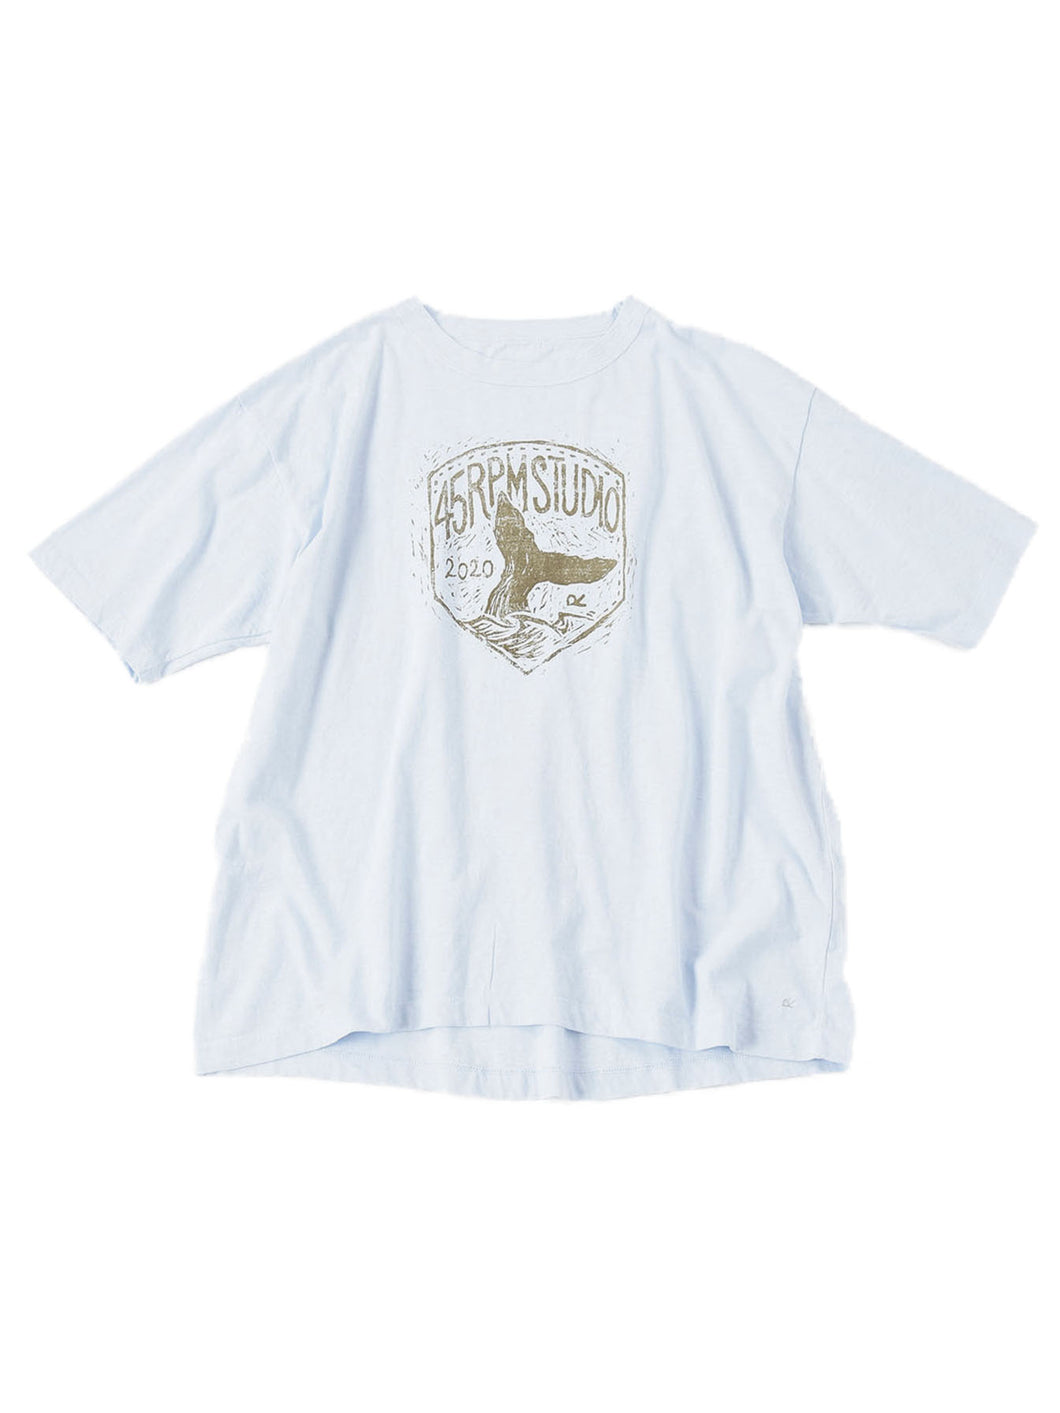 Ocean Story Zimba Cotton Whale Print Short Sleeve T-Shirt in light blue